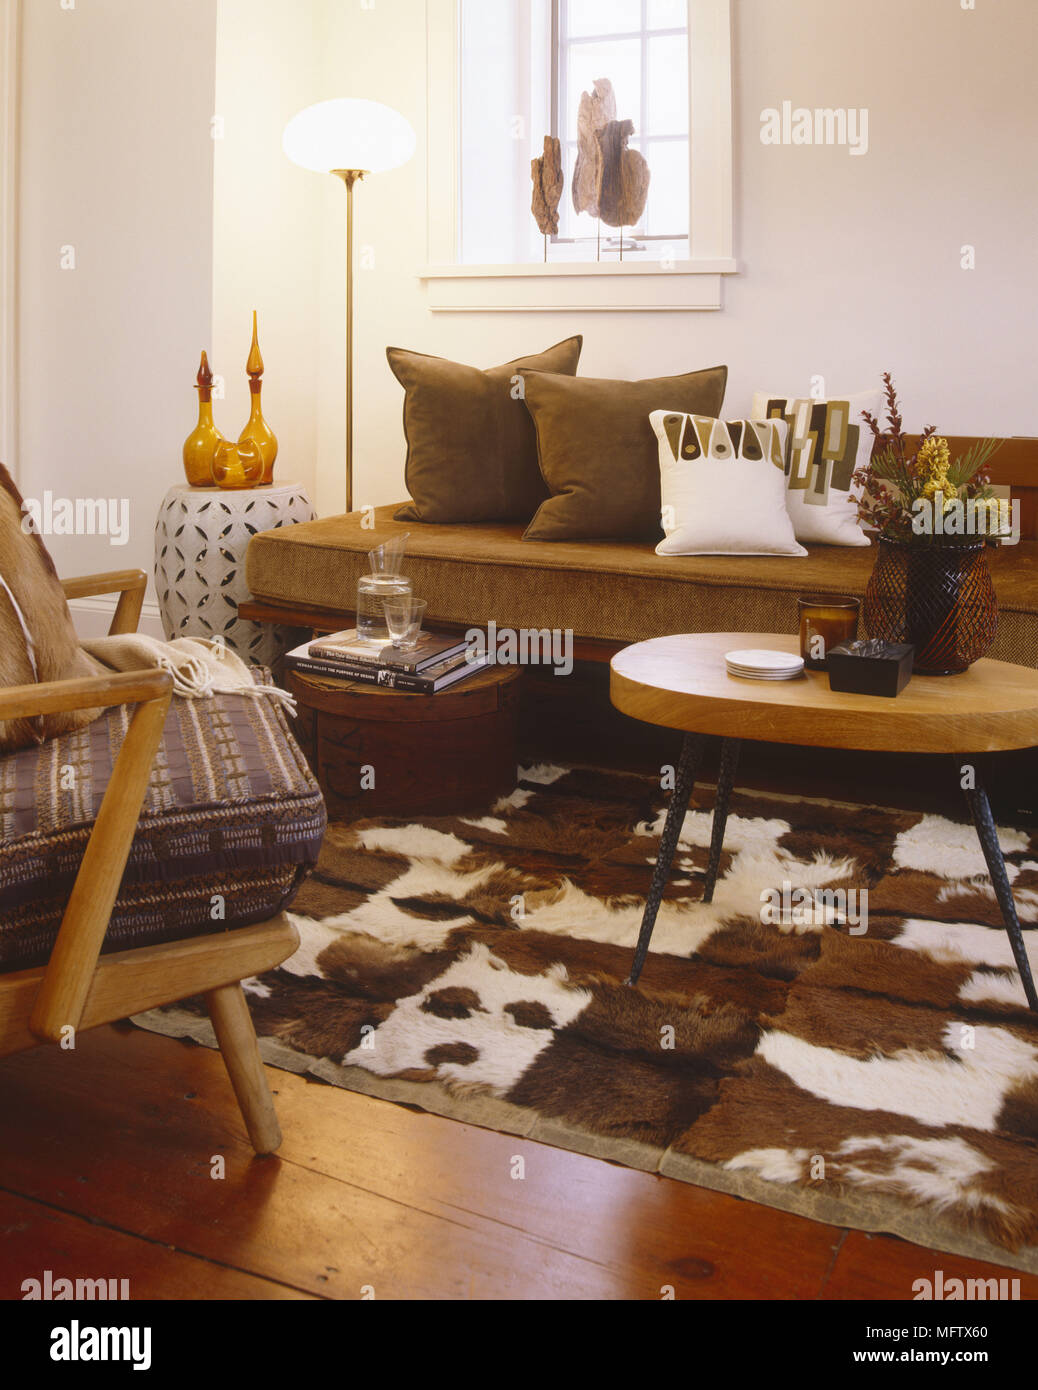 Retro Sitting Room With Cow Skin Rug Bare Stone Walls And Retro Furniture